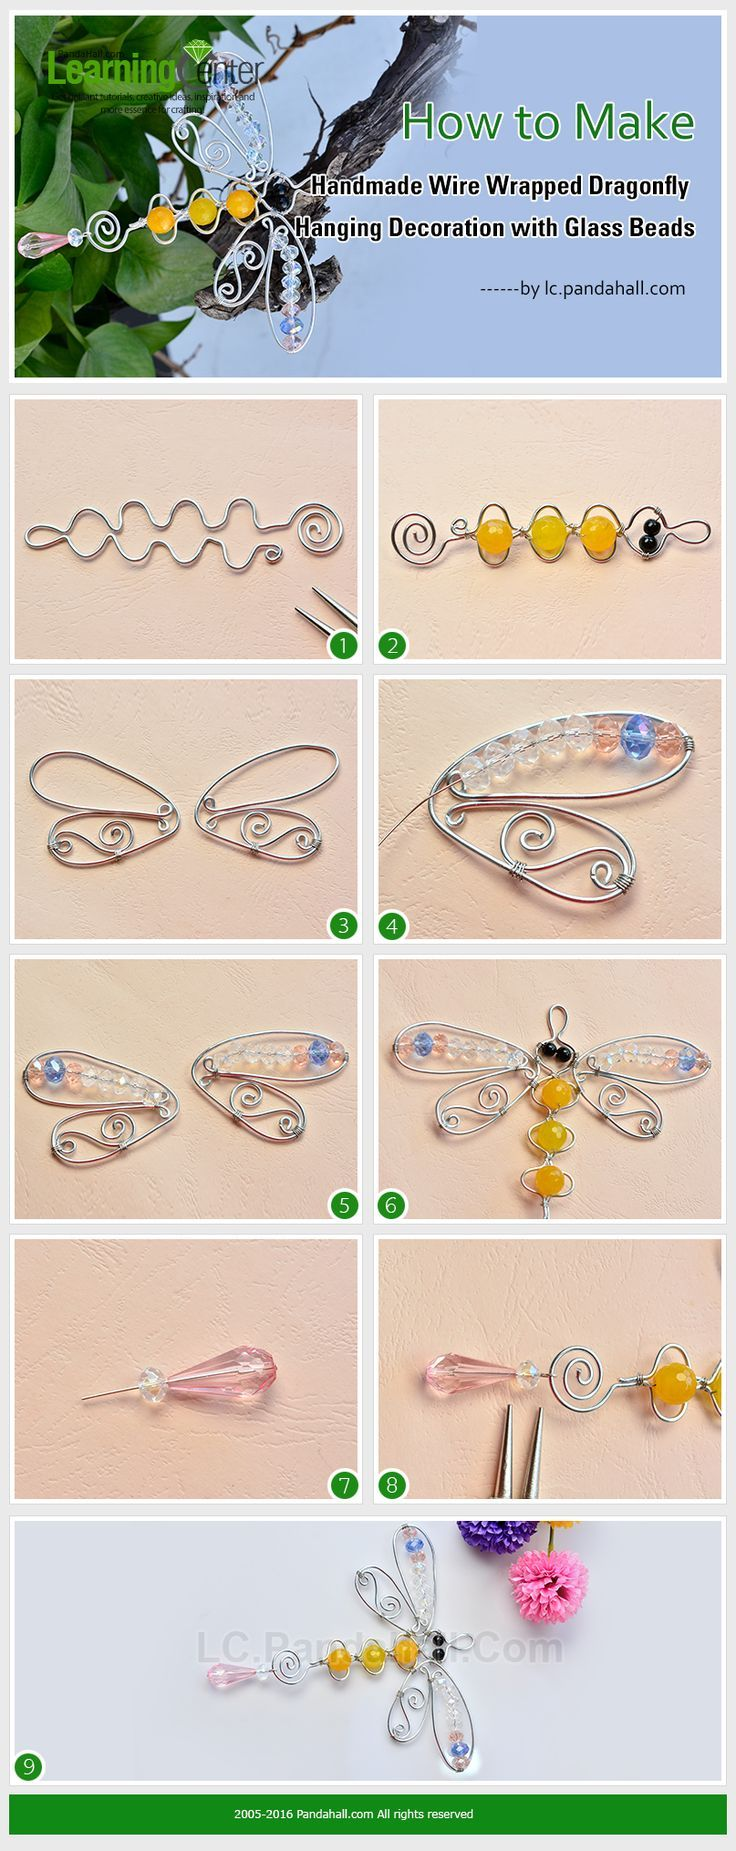 How to Make Handmade Wire Wrapped Dragonfly Hanging Decoration with Glass